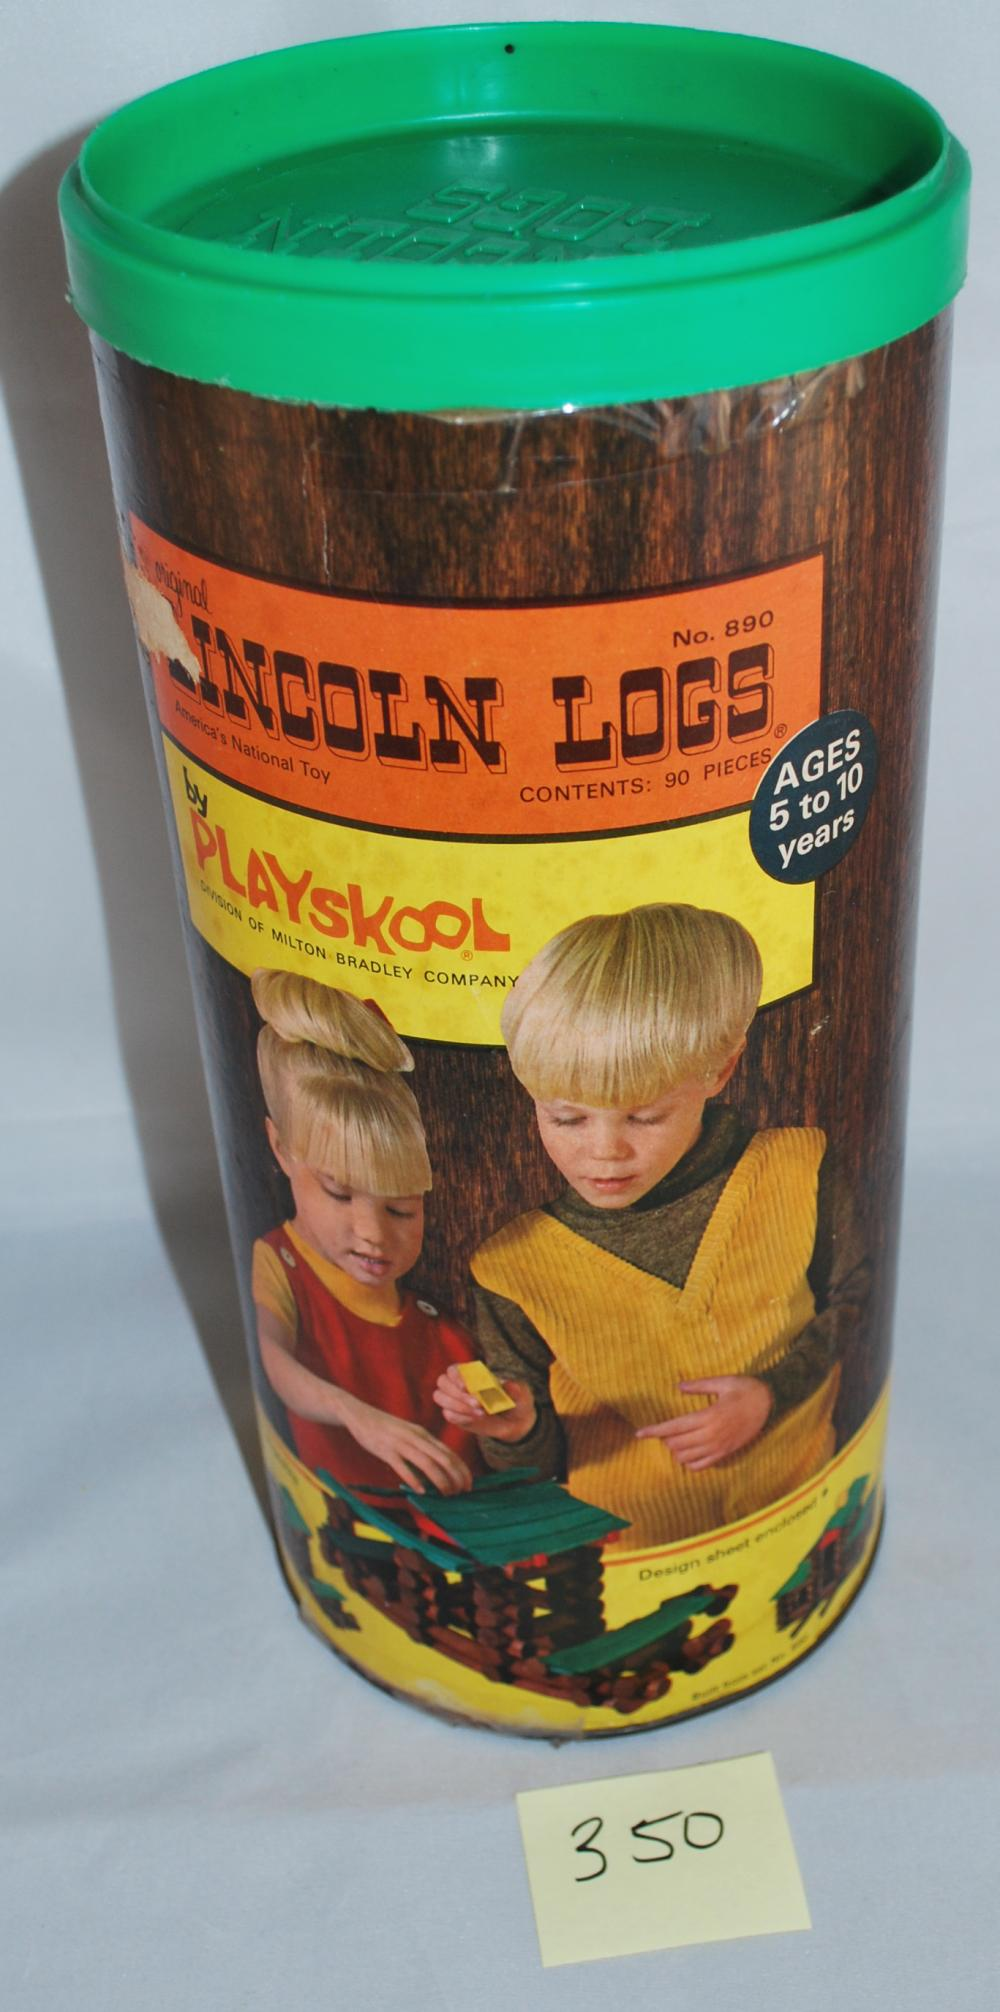 Vintage Playskool Lincoln Logs